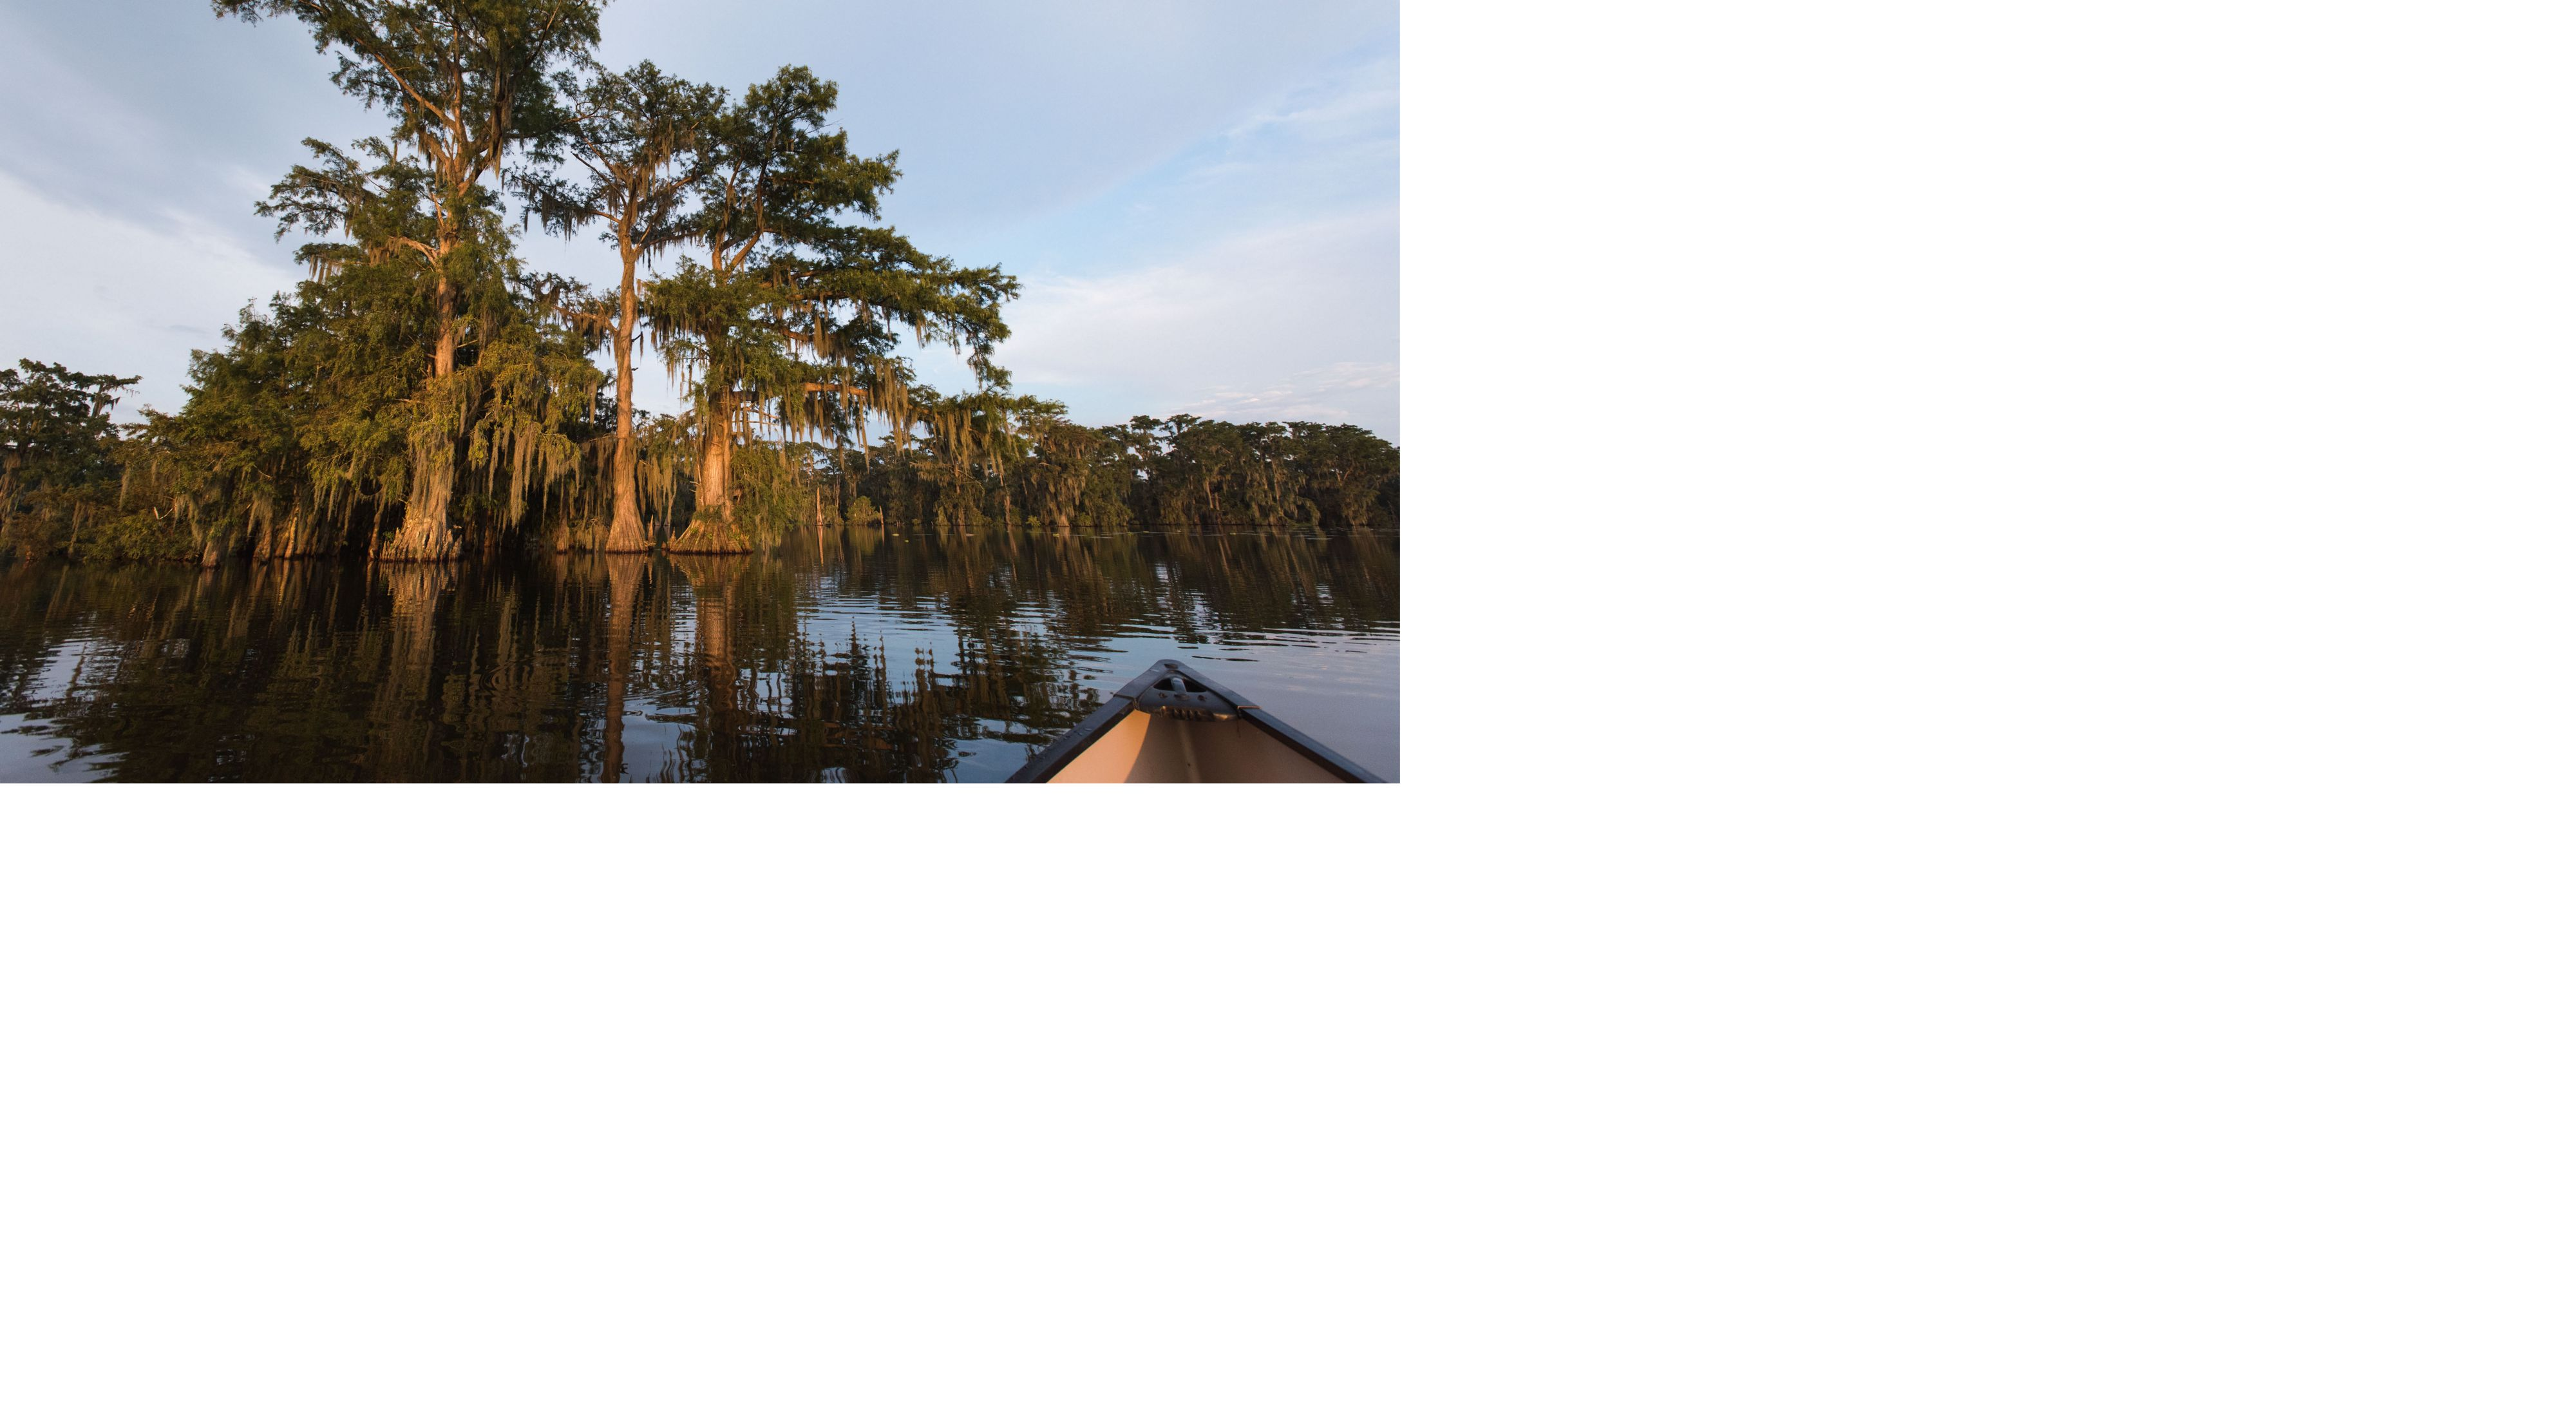 Cypress trees line the banks of Lake Martin, Louisiana, adjacent to Cypress Island Preserve which is owned and managed by TNC.